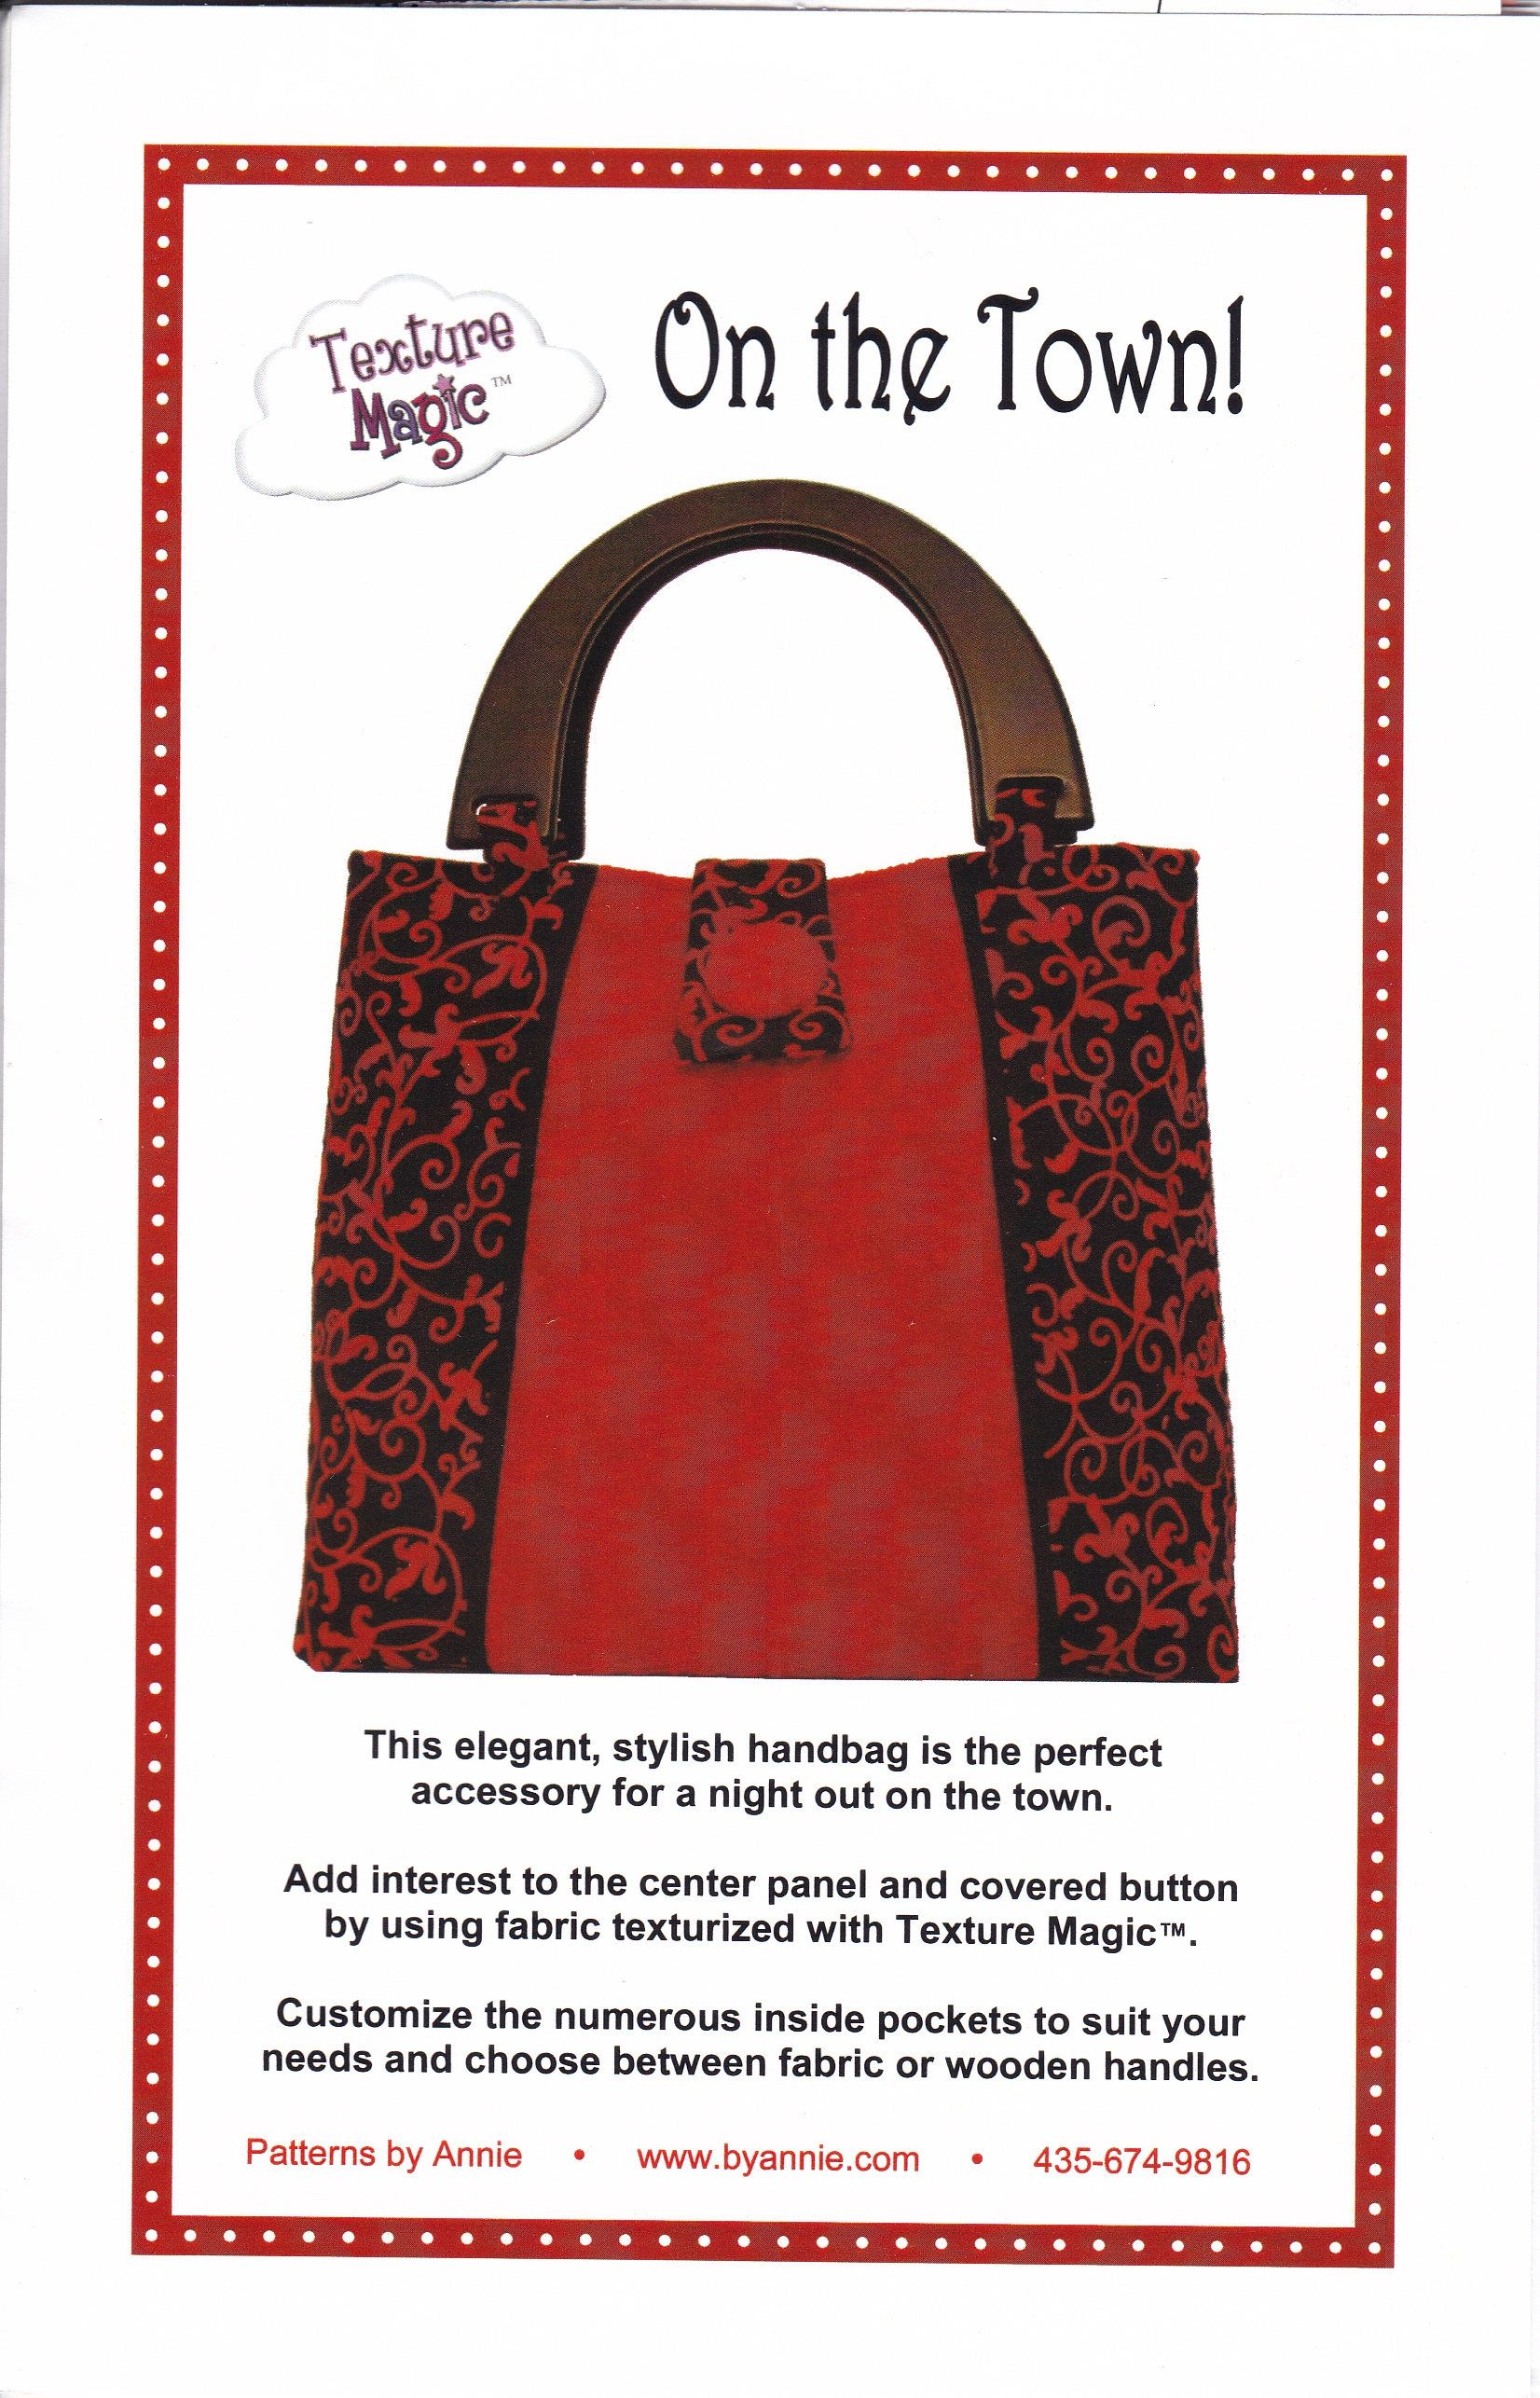 Free Us Ship Texture Magic Patterns By Annie On The Town Tote Bag